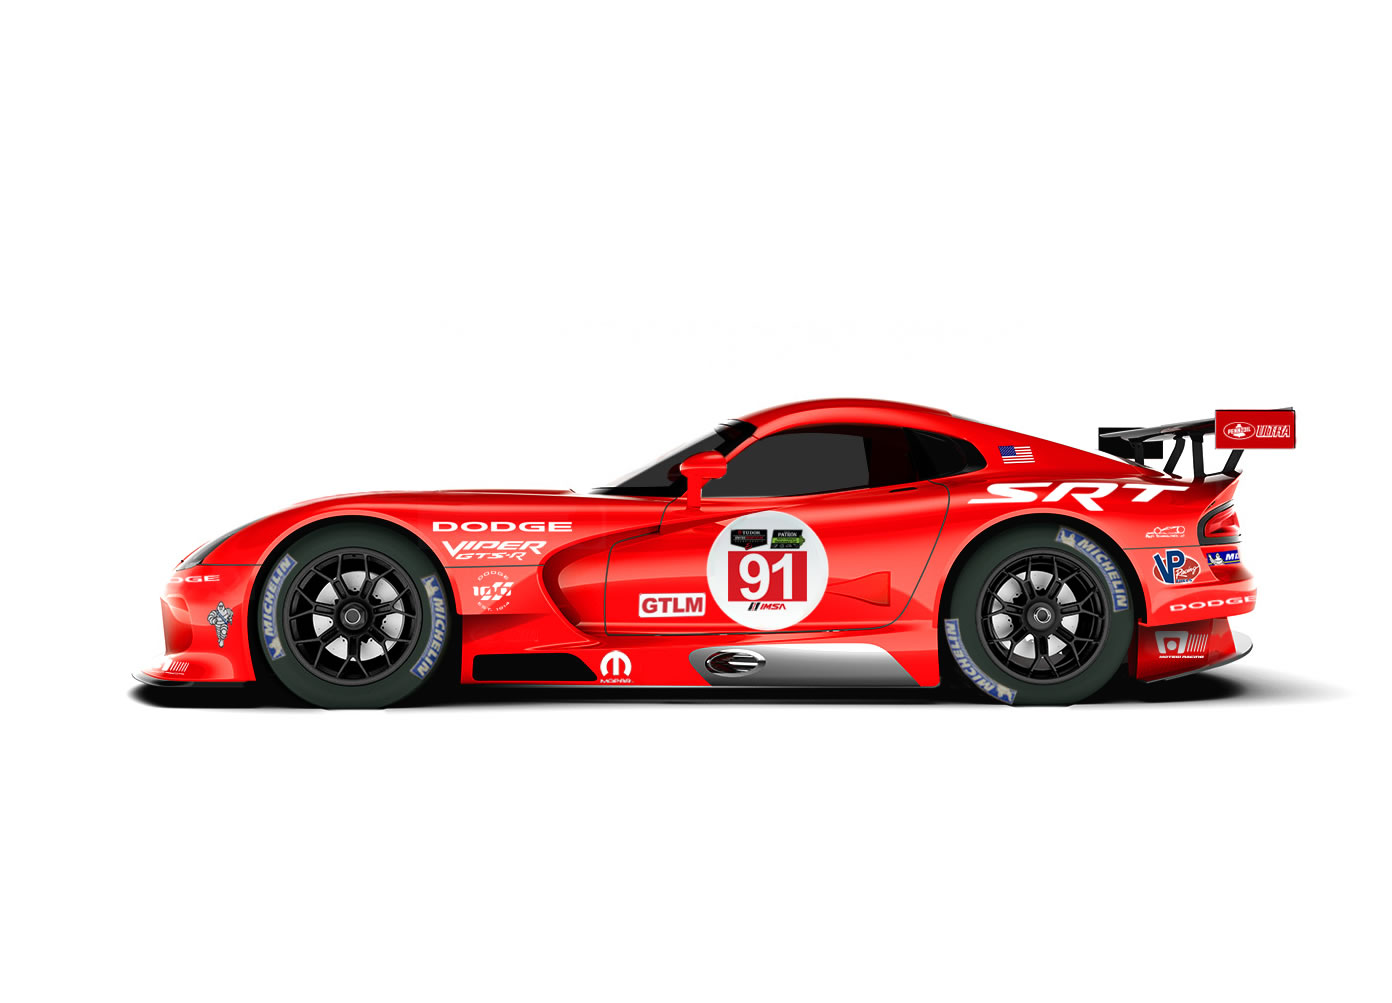 2014 Dodge Viper Srt Gts R Race Car Side Photo Red And